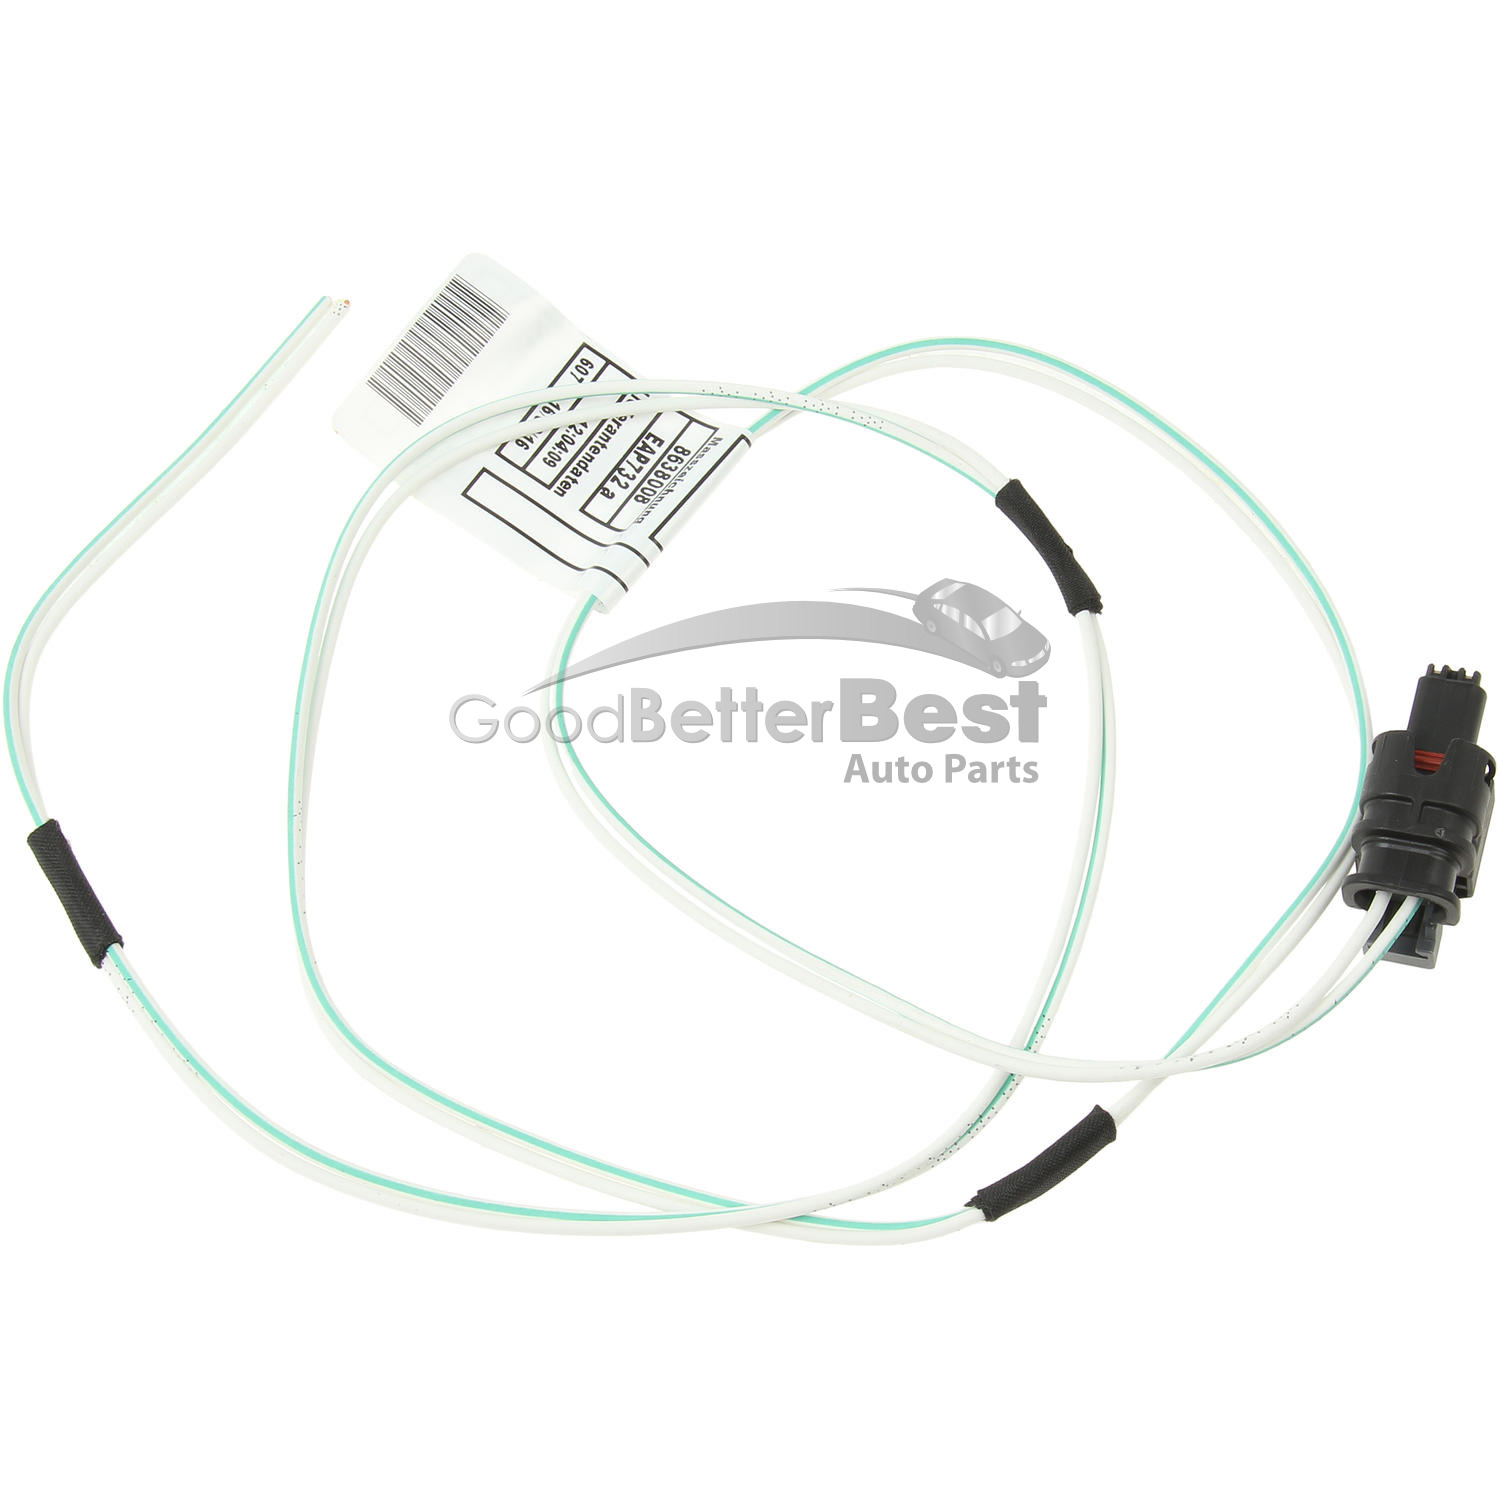 New Genuine Fuel Pump Wiring Harness For Bmw